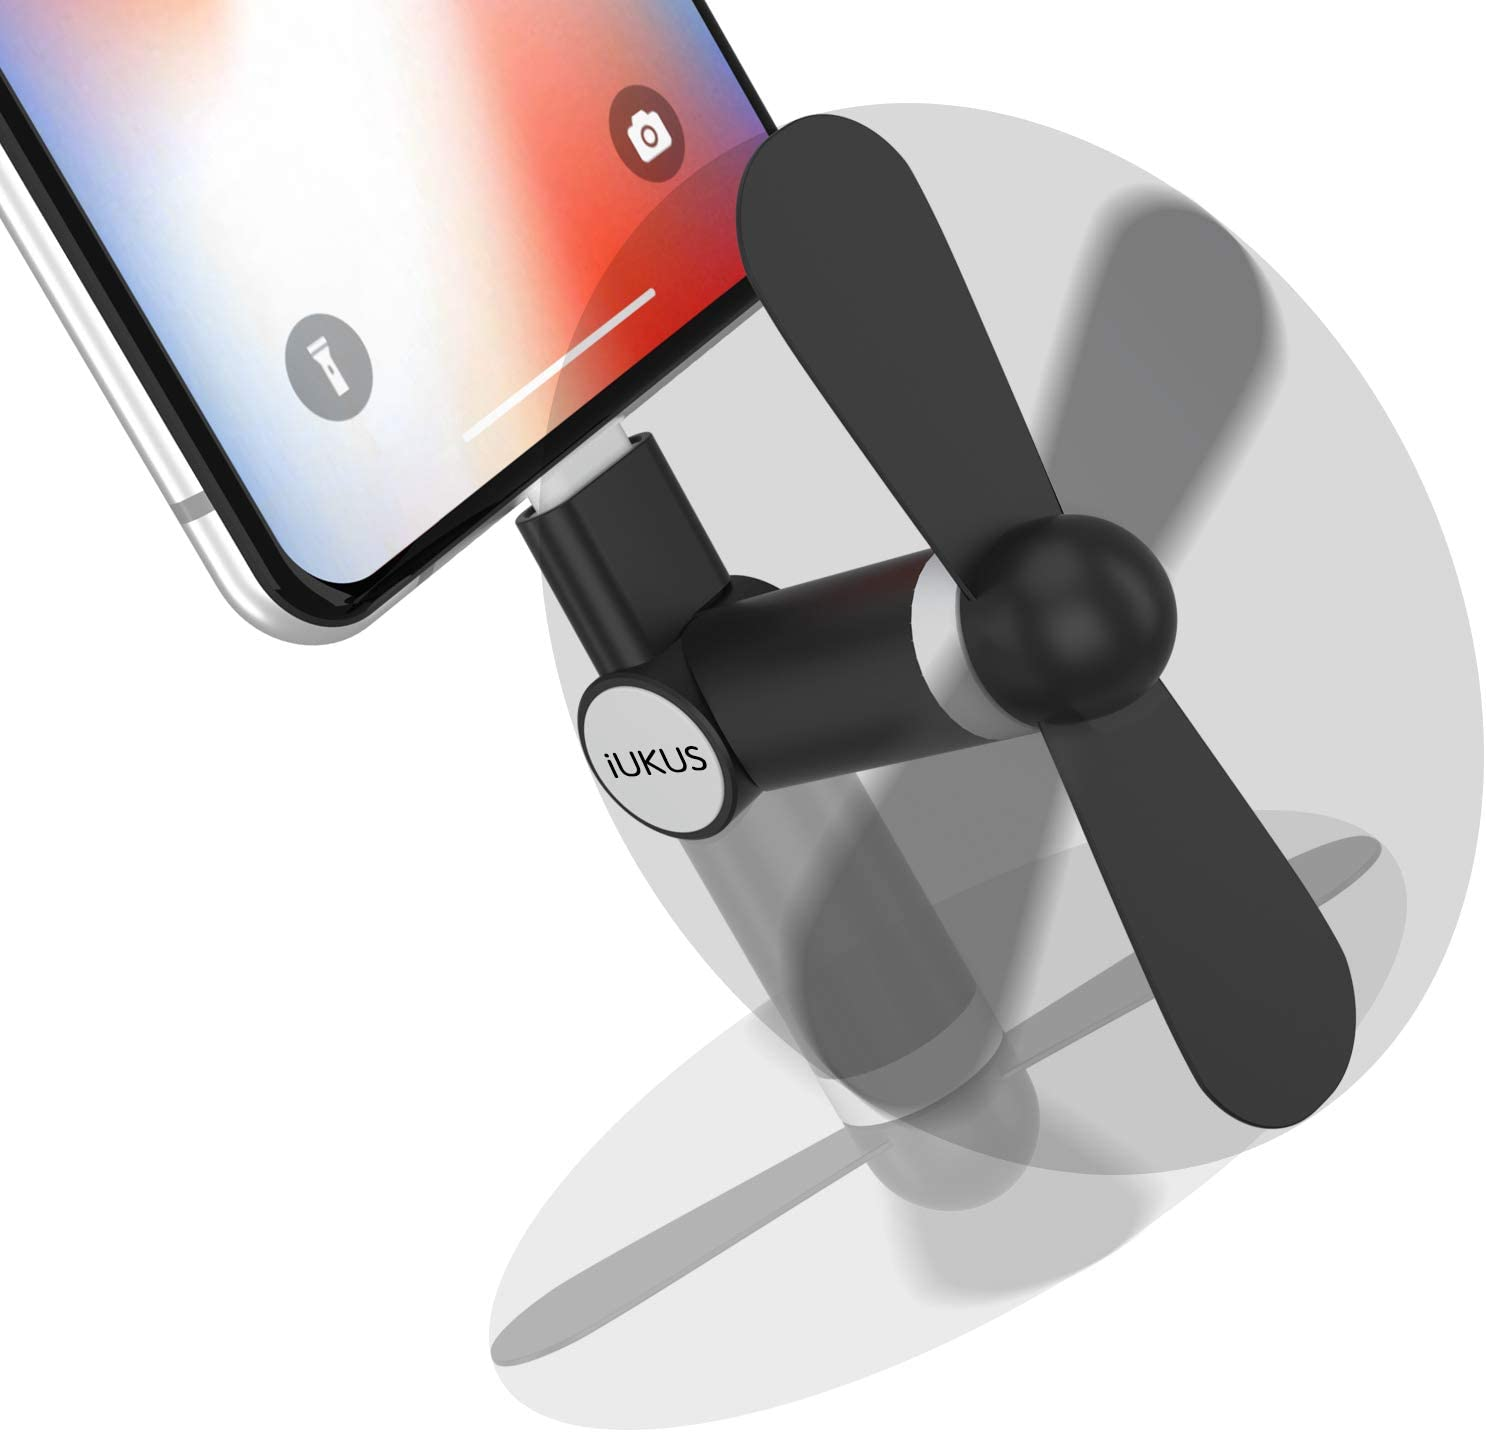 iUKUS Mini Phone Fan, [180 Rotating] Portable Mini Cooler Mobile Phone Fan Compatible with iPhone XS/XR/X/8/8+/7/7+/6, iPad, iPod (Black)